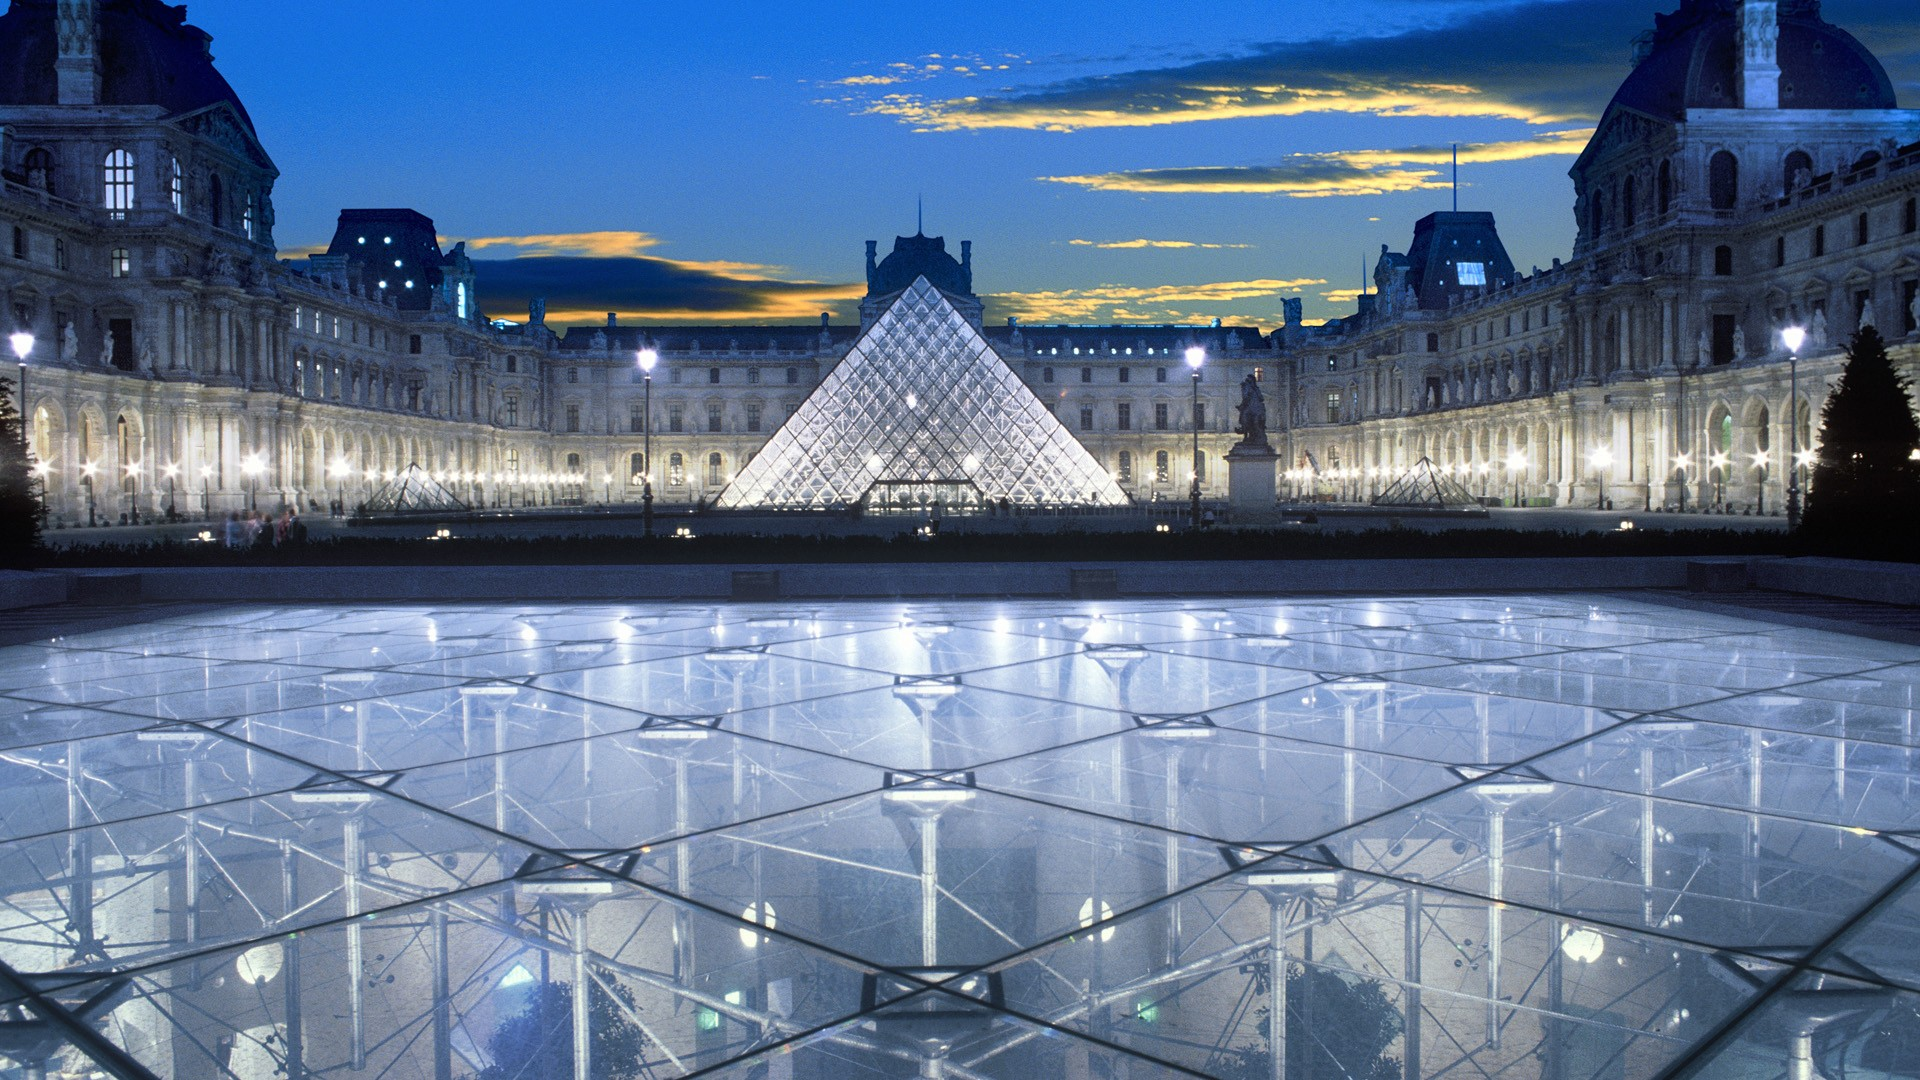 Photos of the building of the Louvre Museum, France